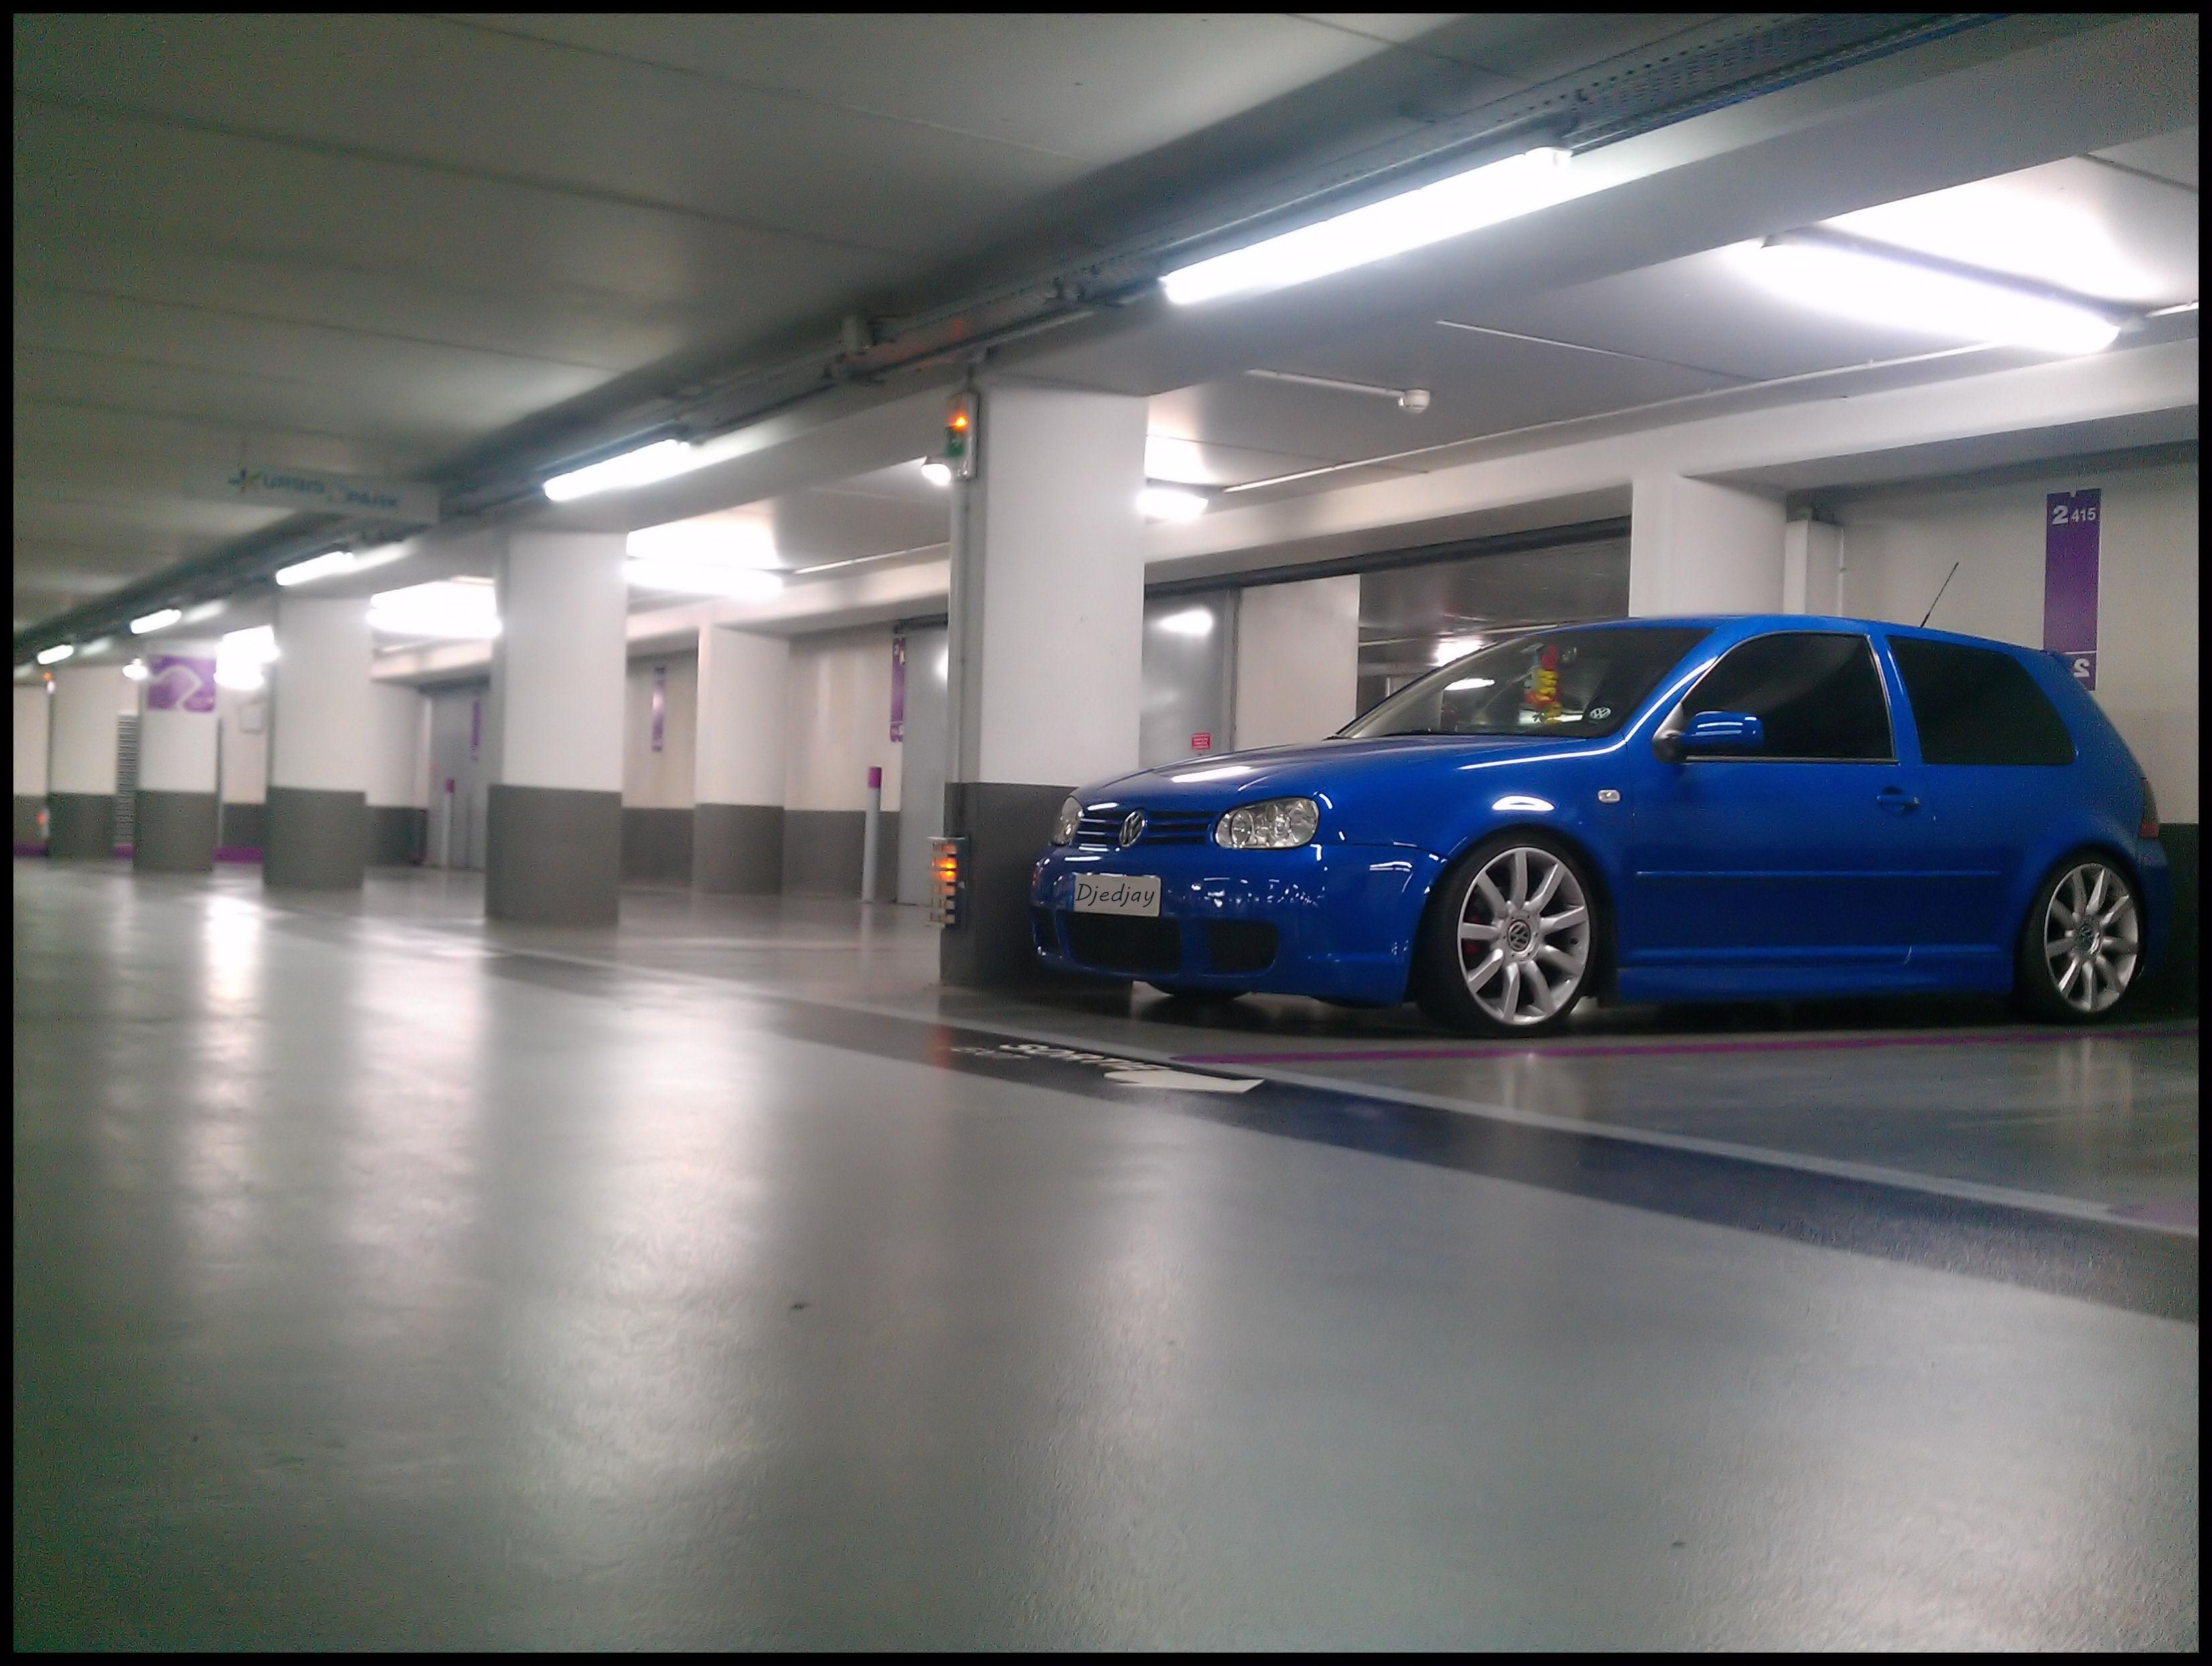 golf iv bleu nogaro retour stock garage des golf iv tdi 110 page 12 forum volkswagen. Black Bedroom Furniture Sets. Home Design Ideas